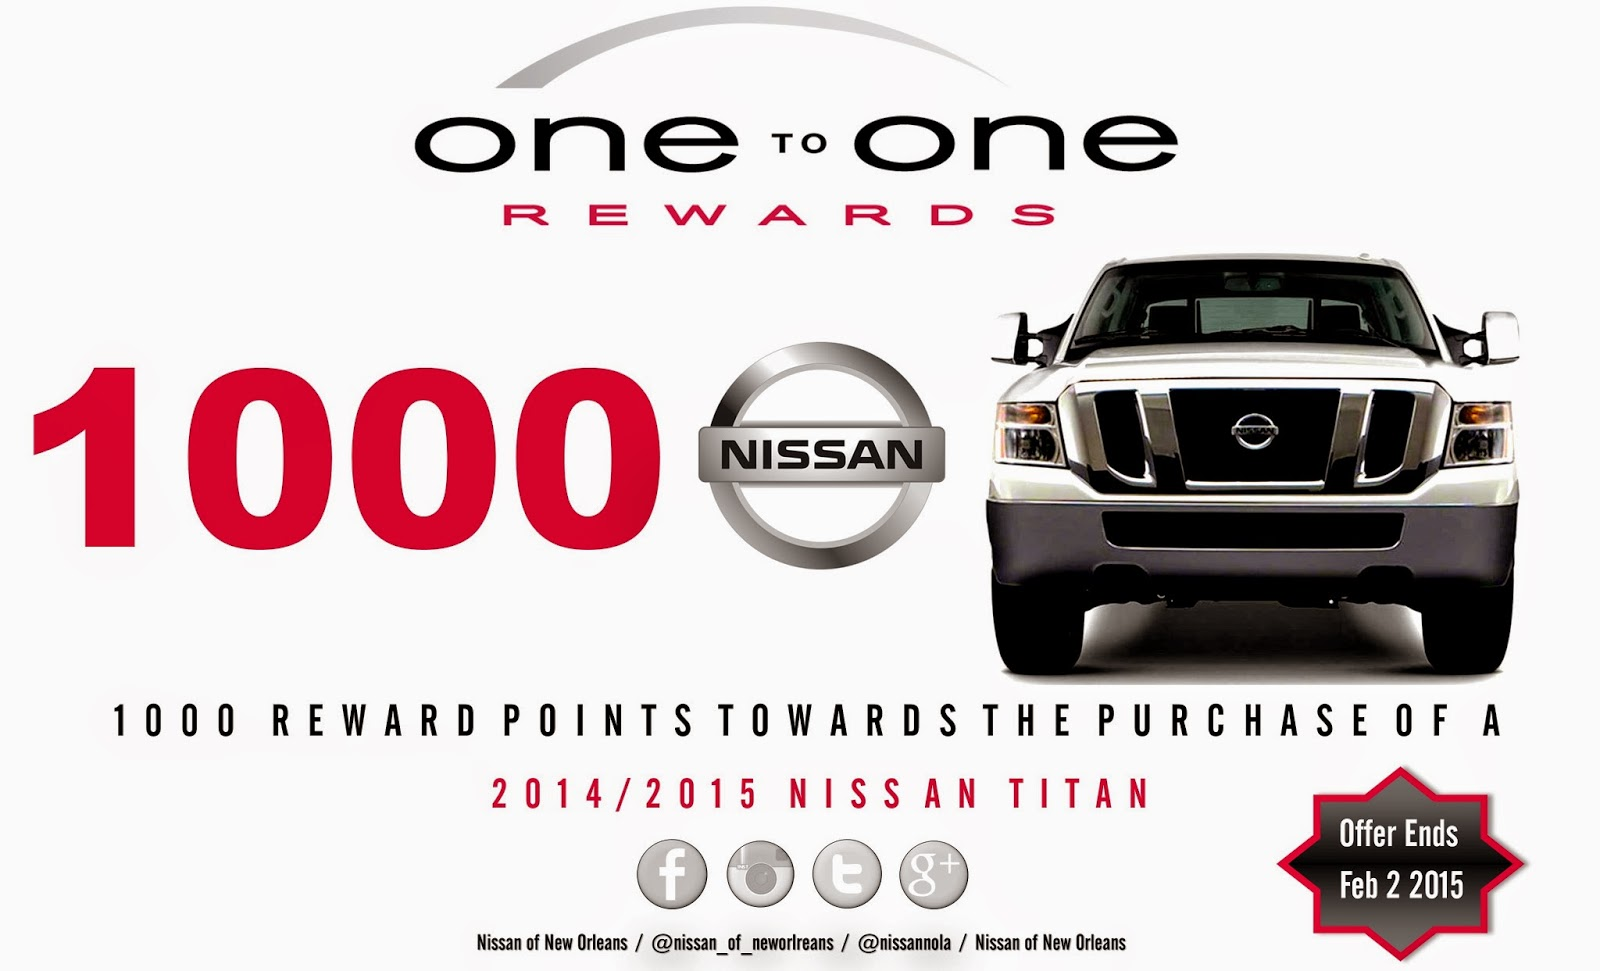 vehicles new to for in frontier nissan of sale la hammond photo vehiclesearchresults drivers dp orleans vehicle preowned